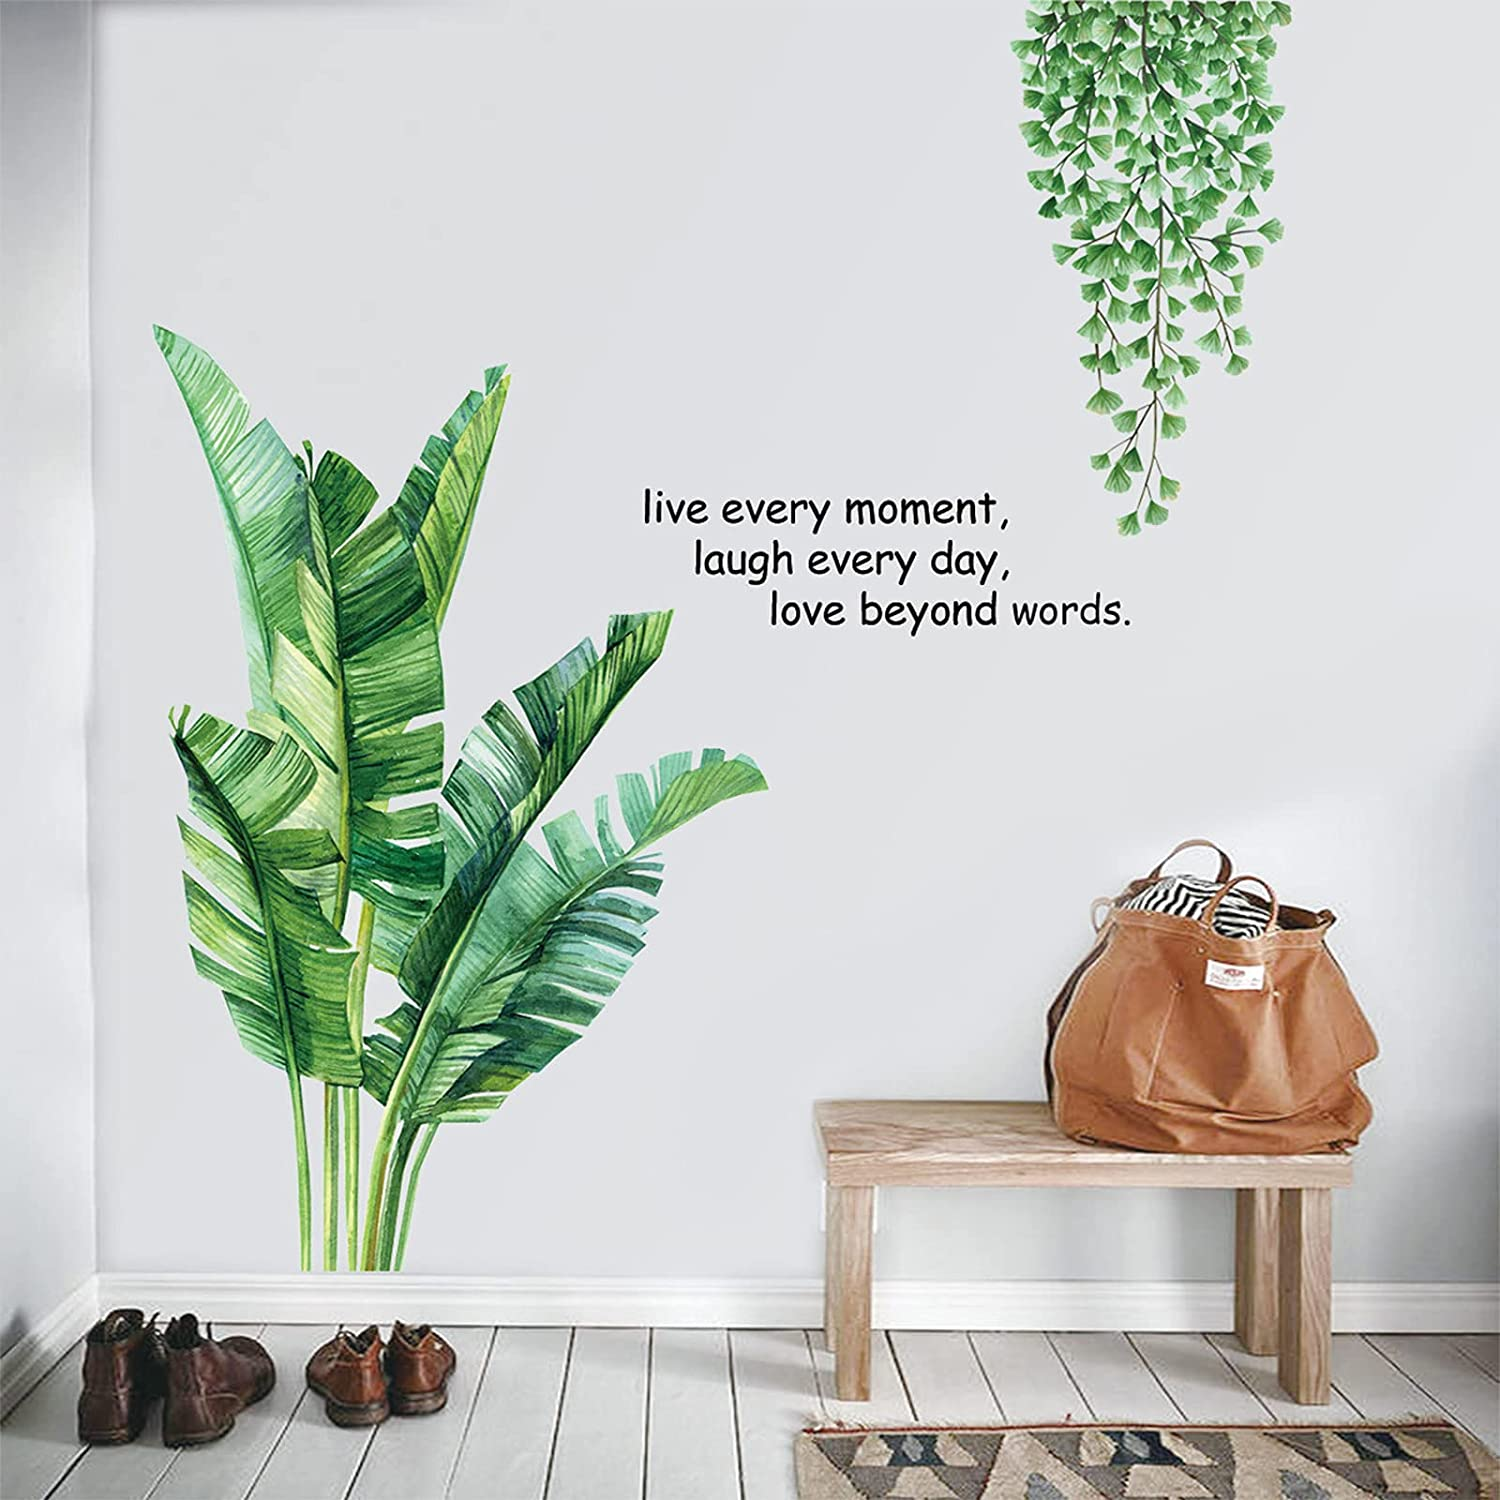 Green Plants Fresh Leaves Wall Decals, Banana Leaf Tropical Plants Wall Decals, Removable Palm Tree Leaf Plants Wall Stickers, DIY Art Decor Murals Wallpaper Decoration for Bedroom, Nursery, TV Wall